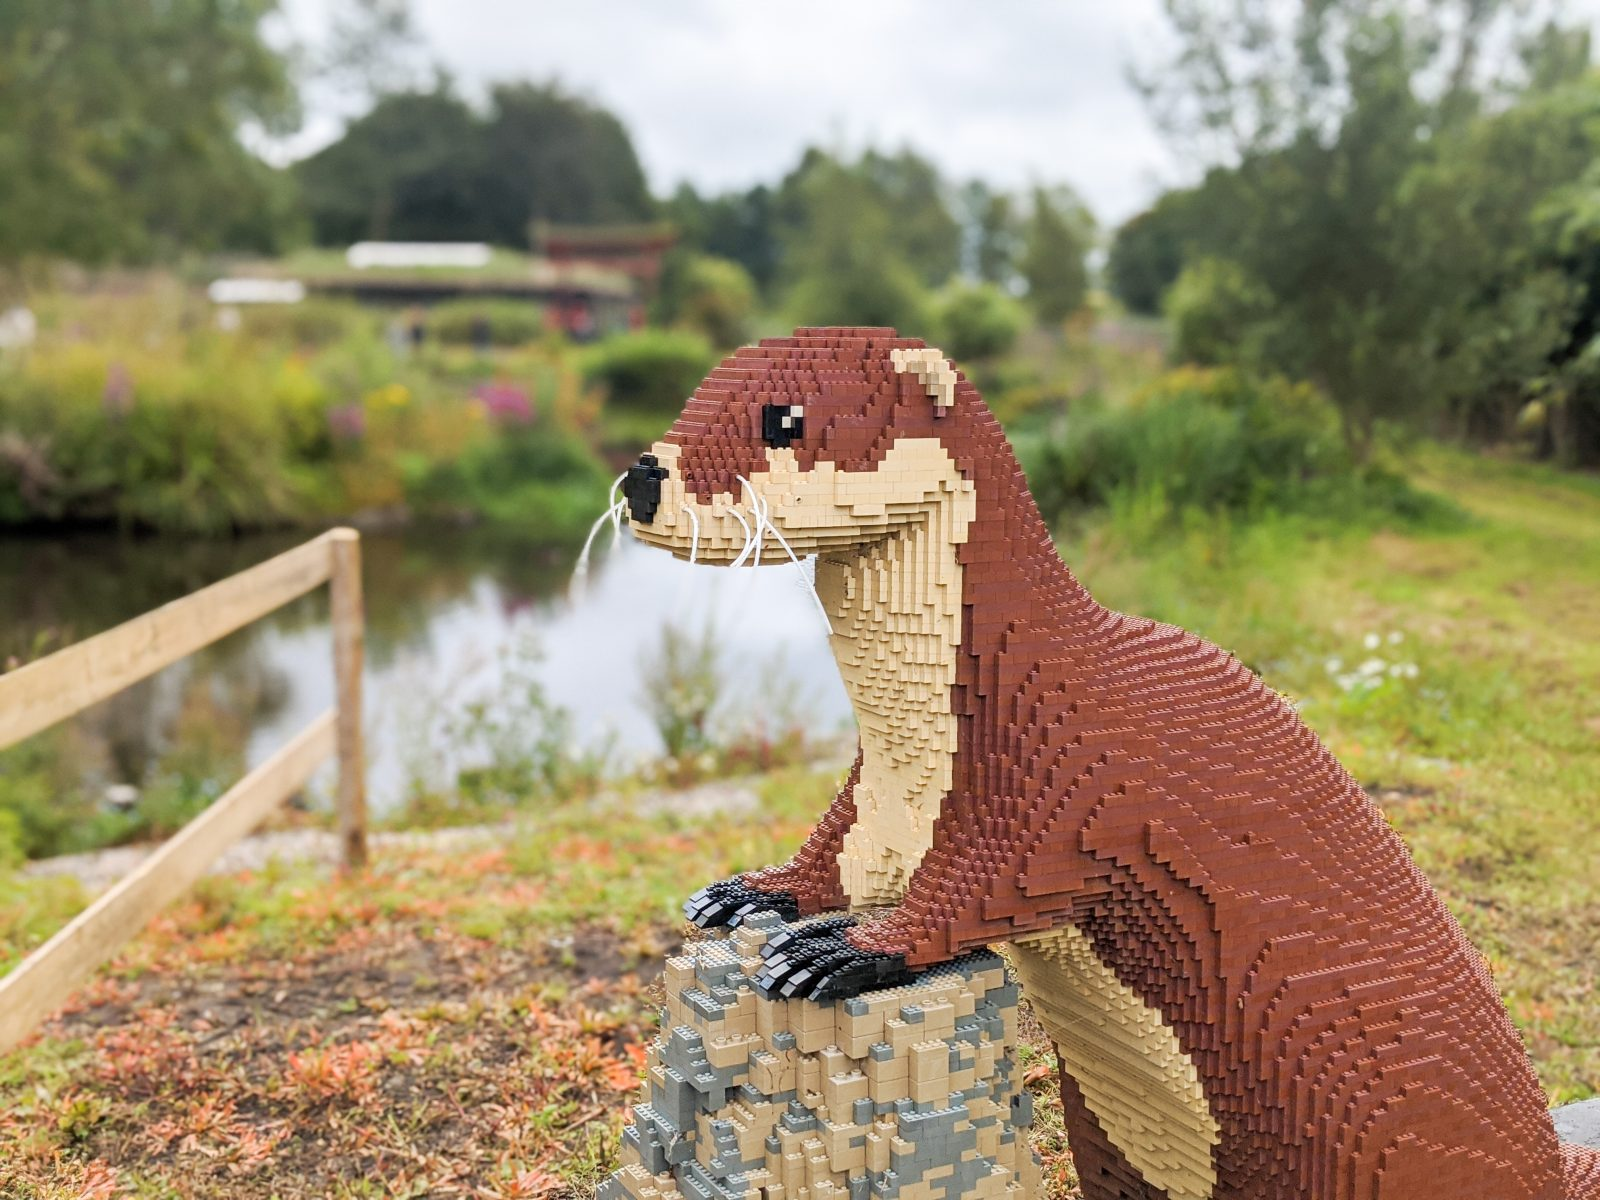 Lego otter at Martin mere Wetlands Centre